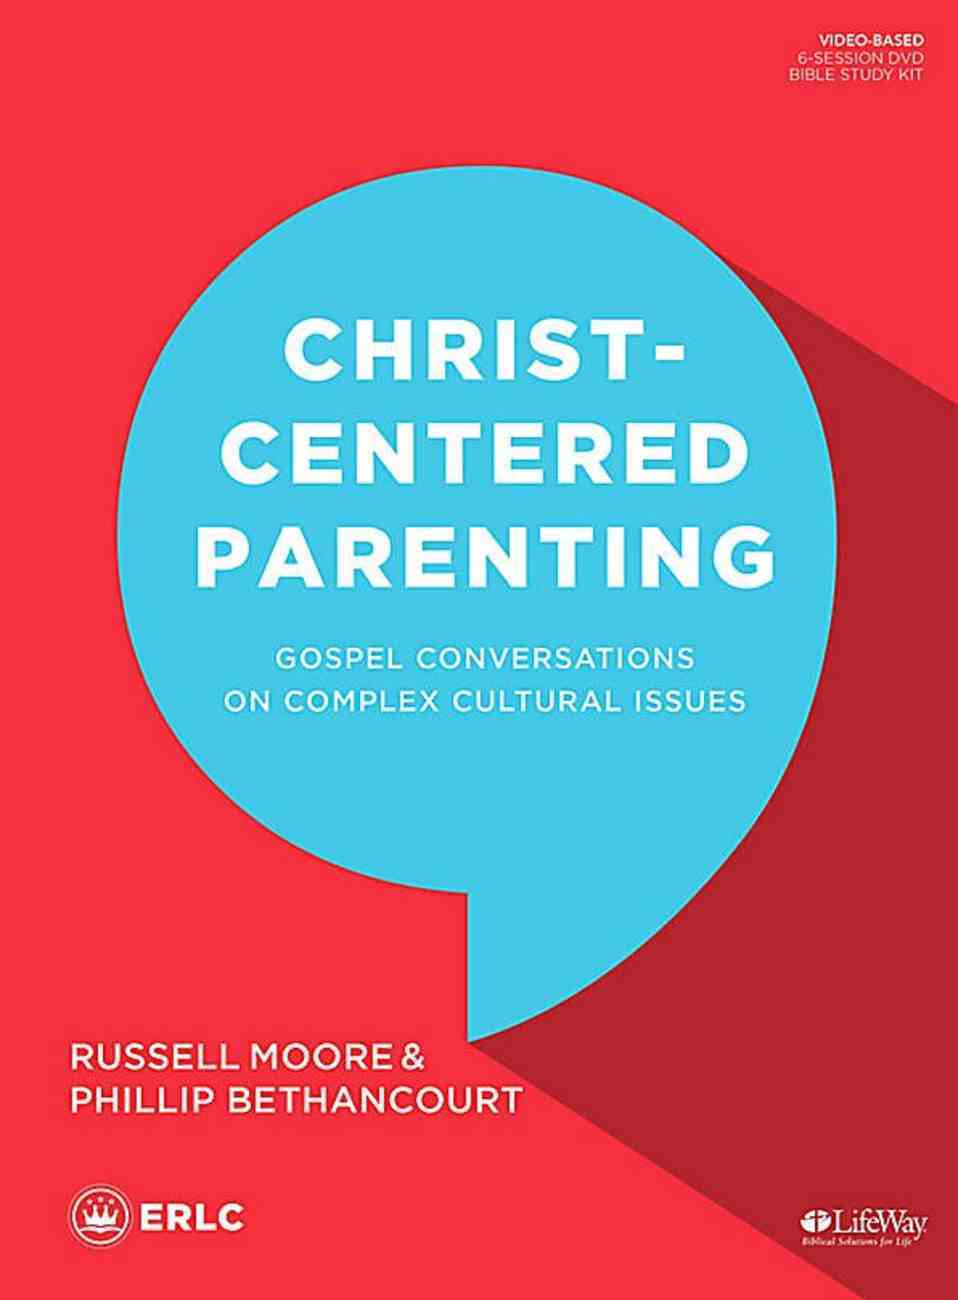 Christ-Centered Parenting (2 Dvds): Gospel Conversations on Complex Cultural Issues (Dvd Only Set) DVD